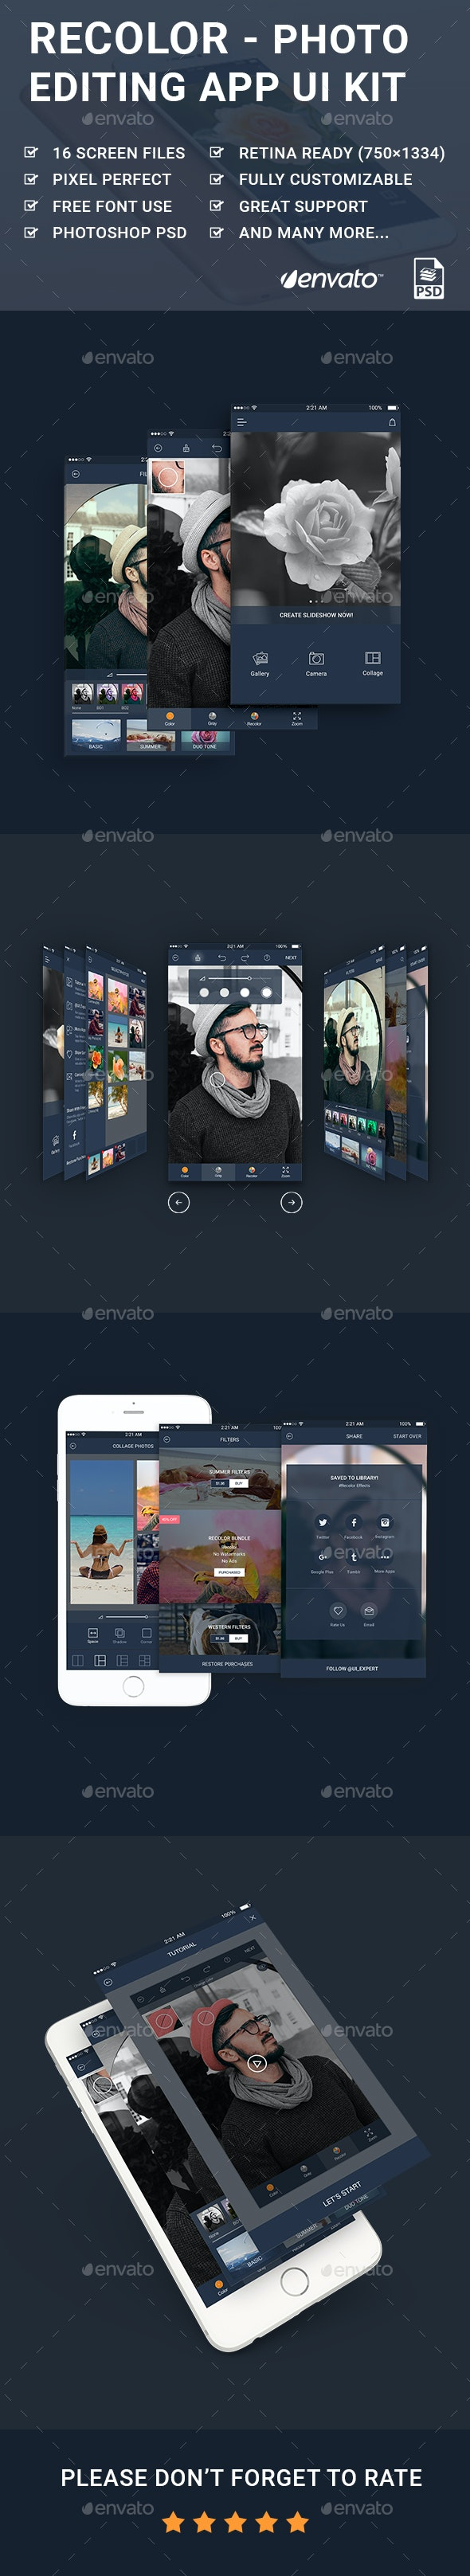 Recolor - Photo Editing Mobile App UI Kit - User Interfaces Web Elements